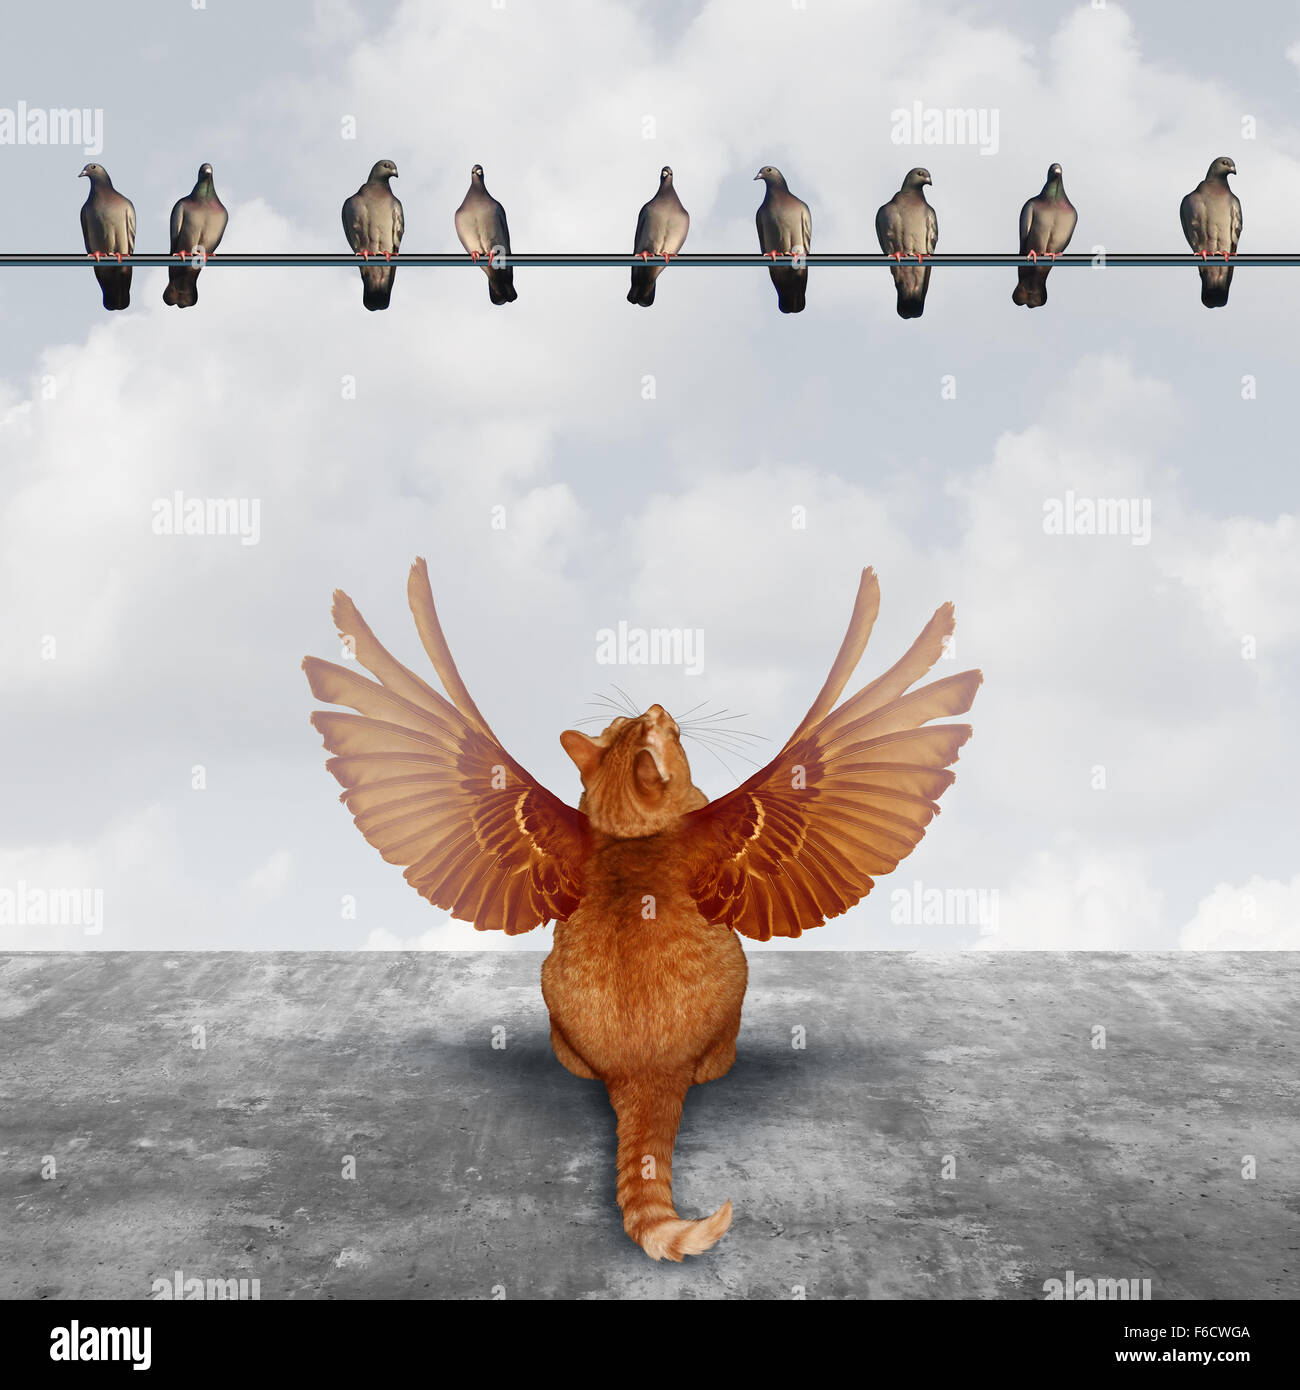 Motivation and imagination concept as an ambitious cat with imaginary wings looking up at a group of birds as an - Stock Image